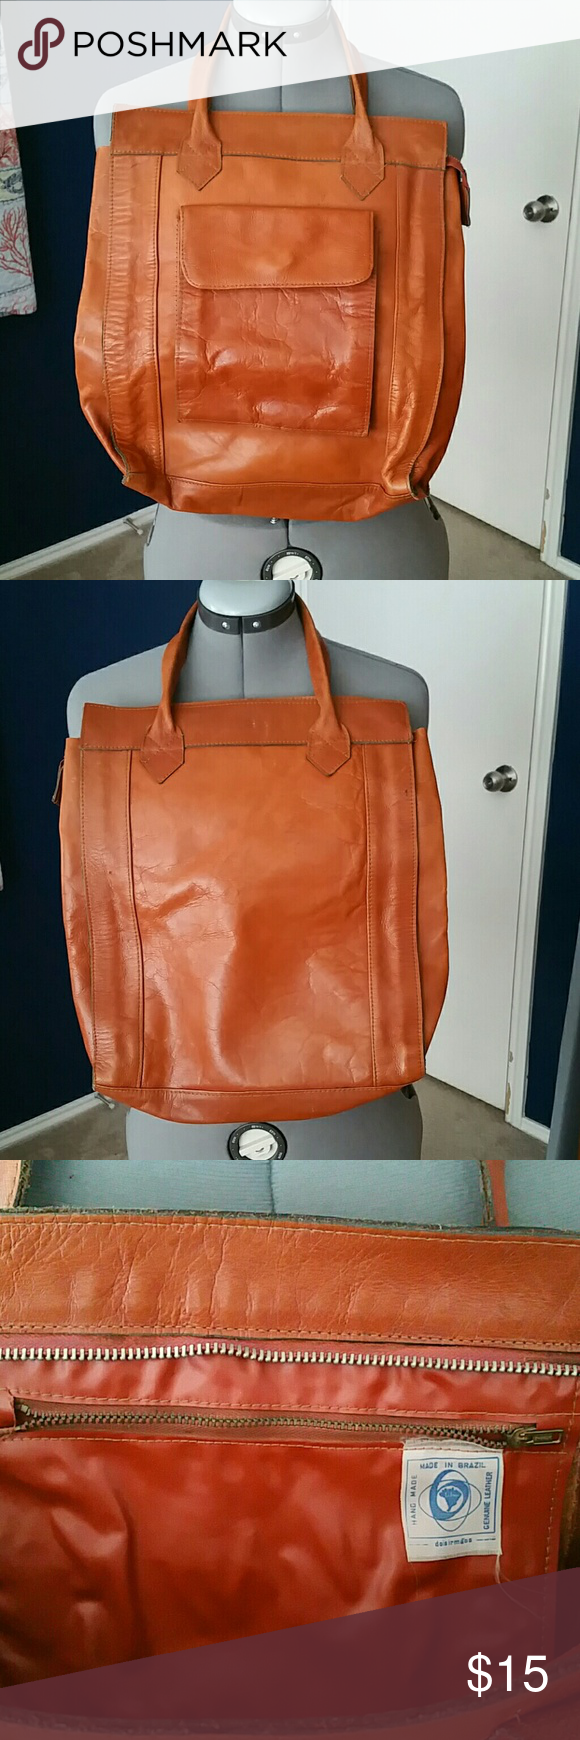 Vintage leather tote Metal top zip. One interior, one exterior pocket Handles good Made in Brazil Bags Totes